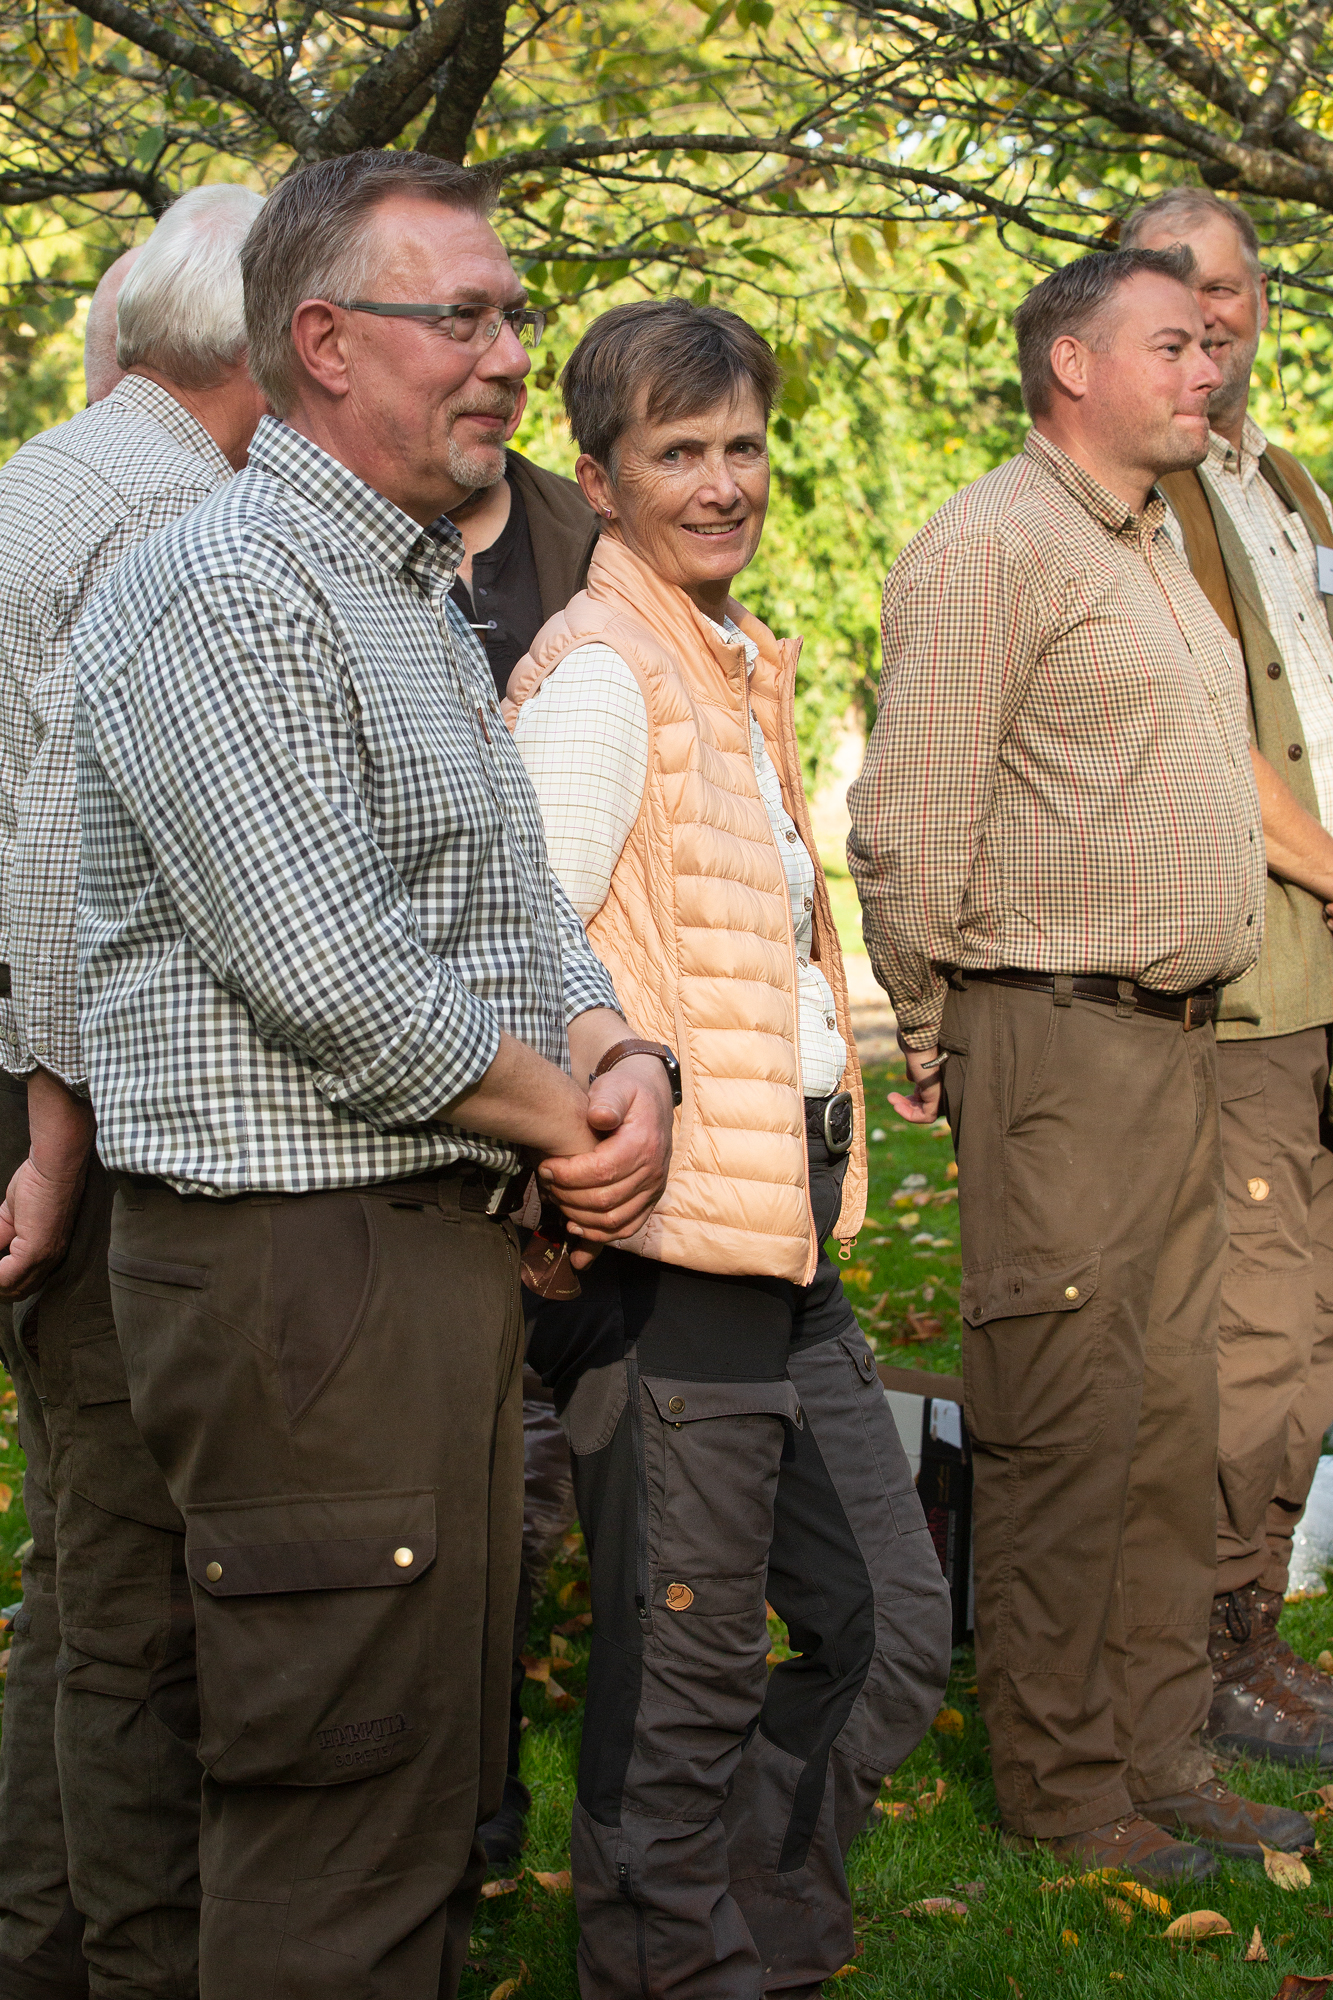 Anders-Hegnet, Lise-Gørtz and Thomas Ehlers